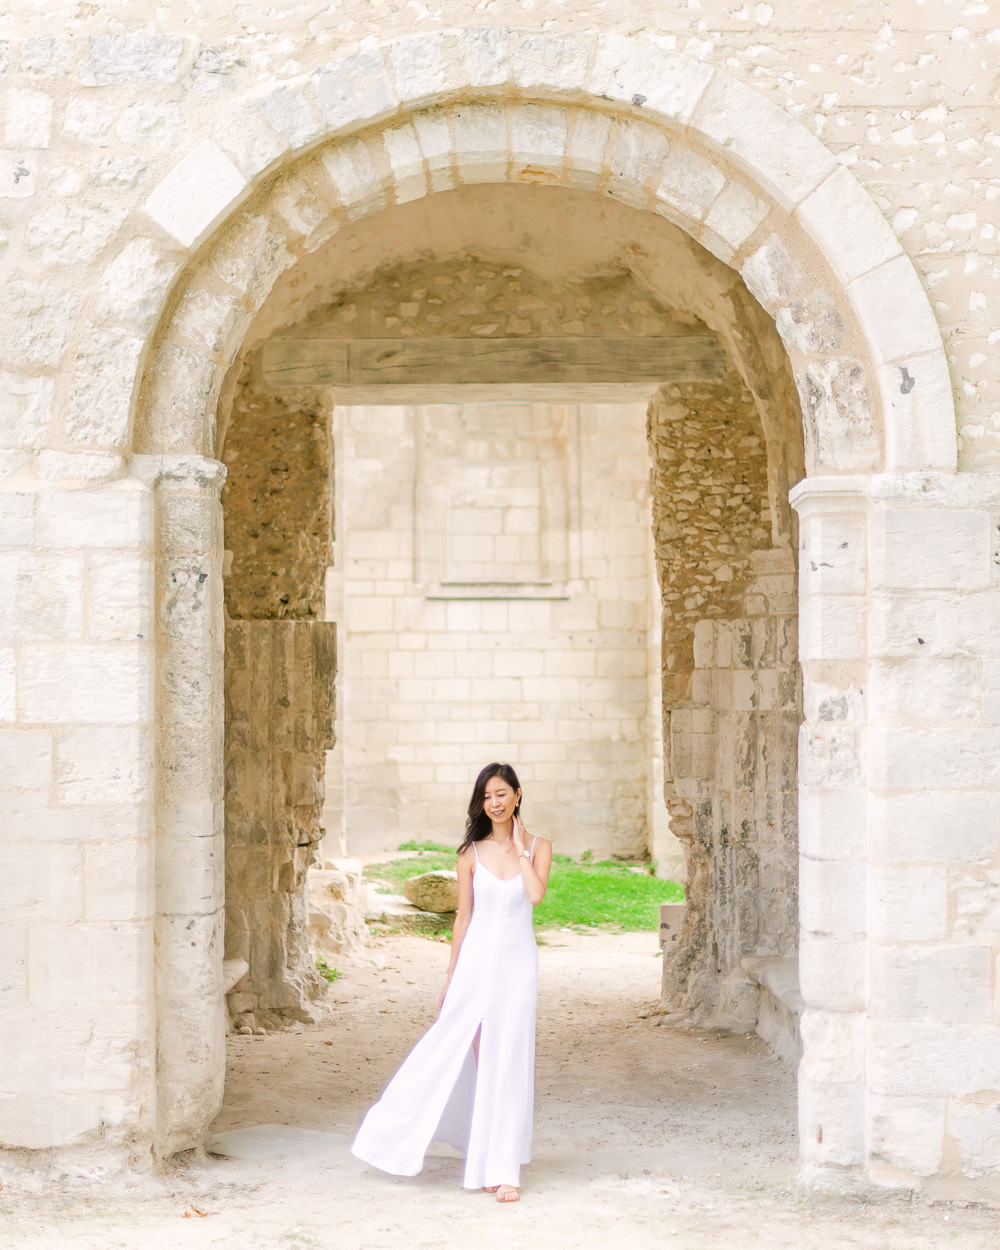 Jumièges Abbey – The Most Beautiful Ruins in France